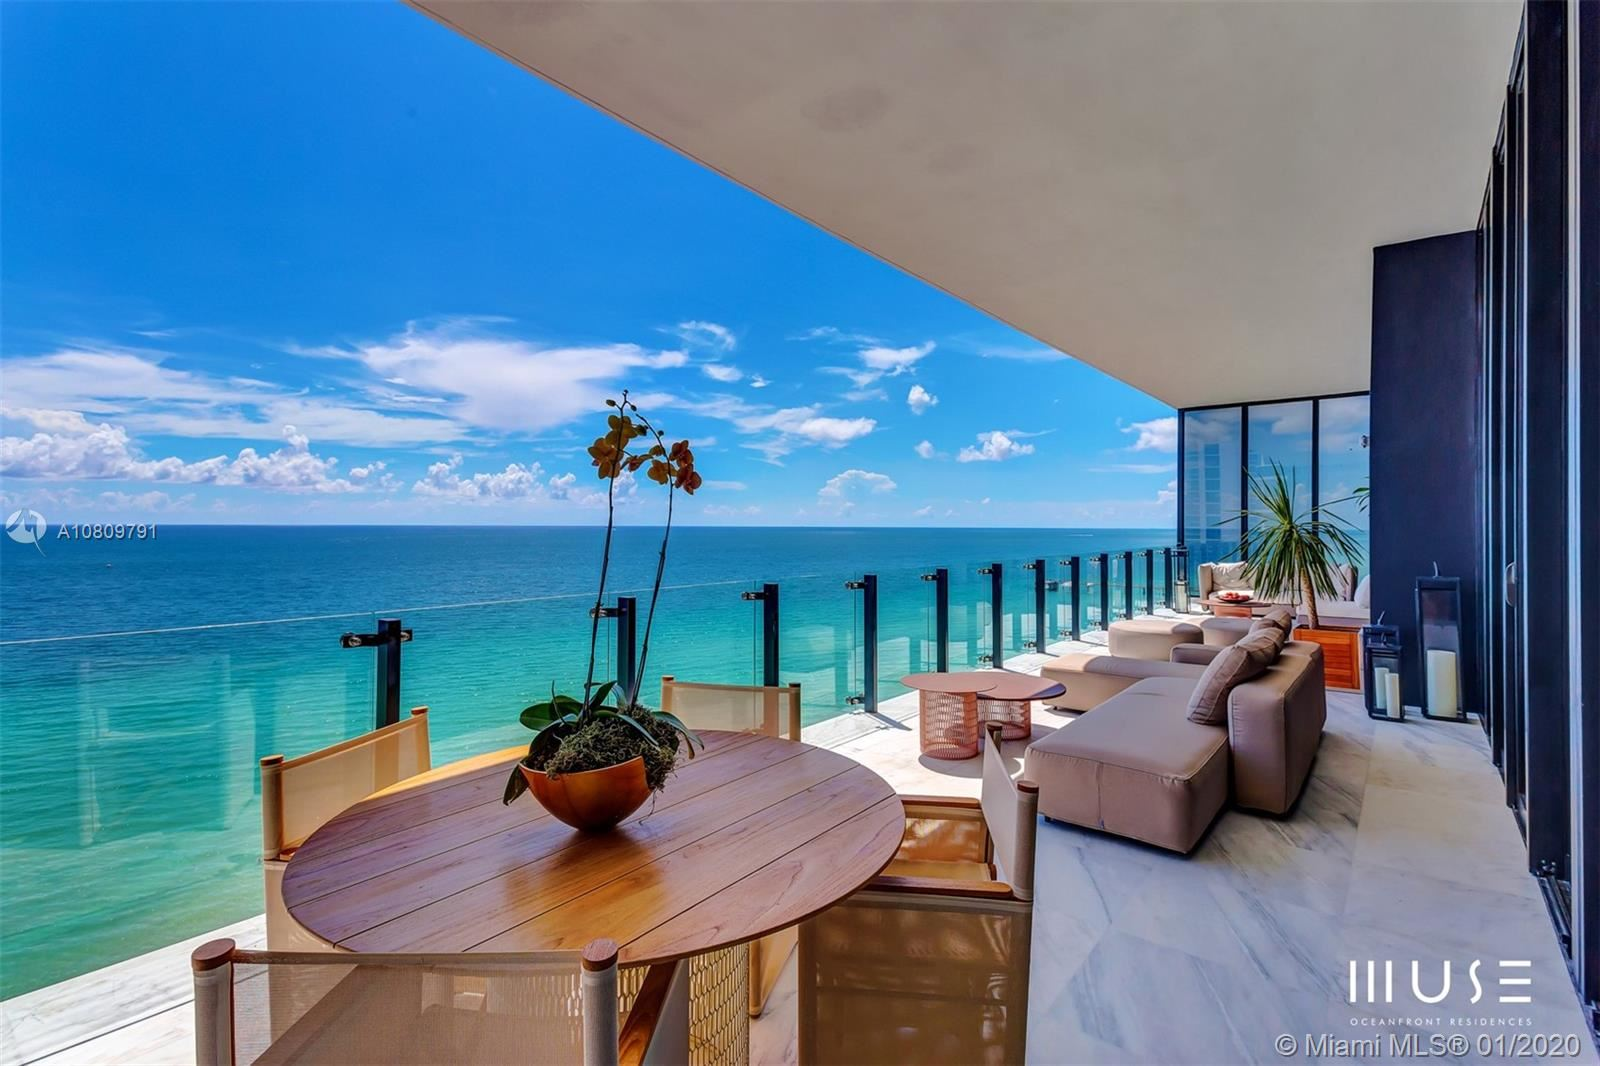 17141 Collins Ave #1201, Sunny Isles, FL 33160 - #: A10809791